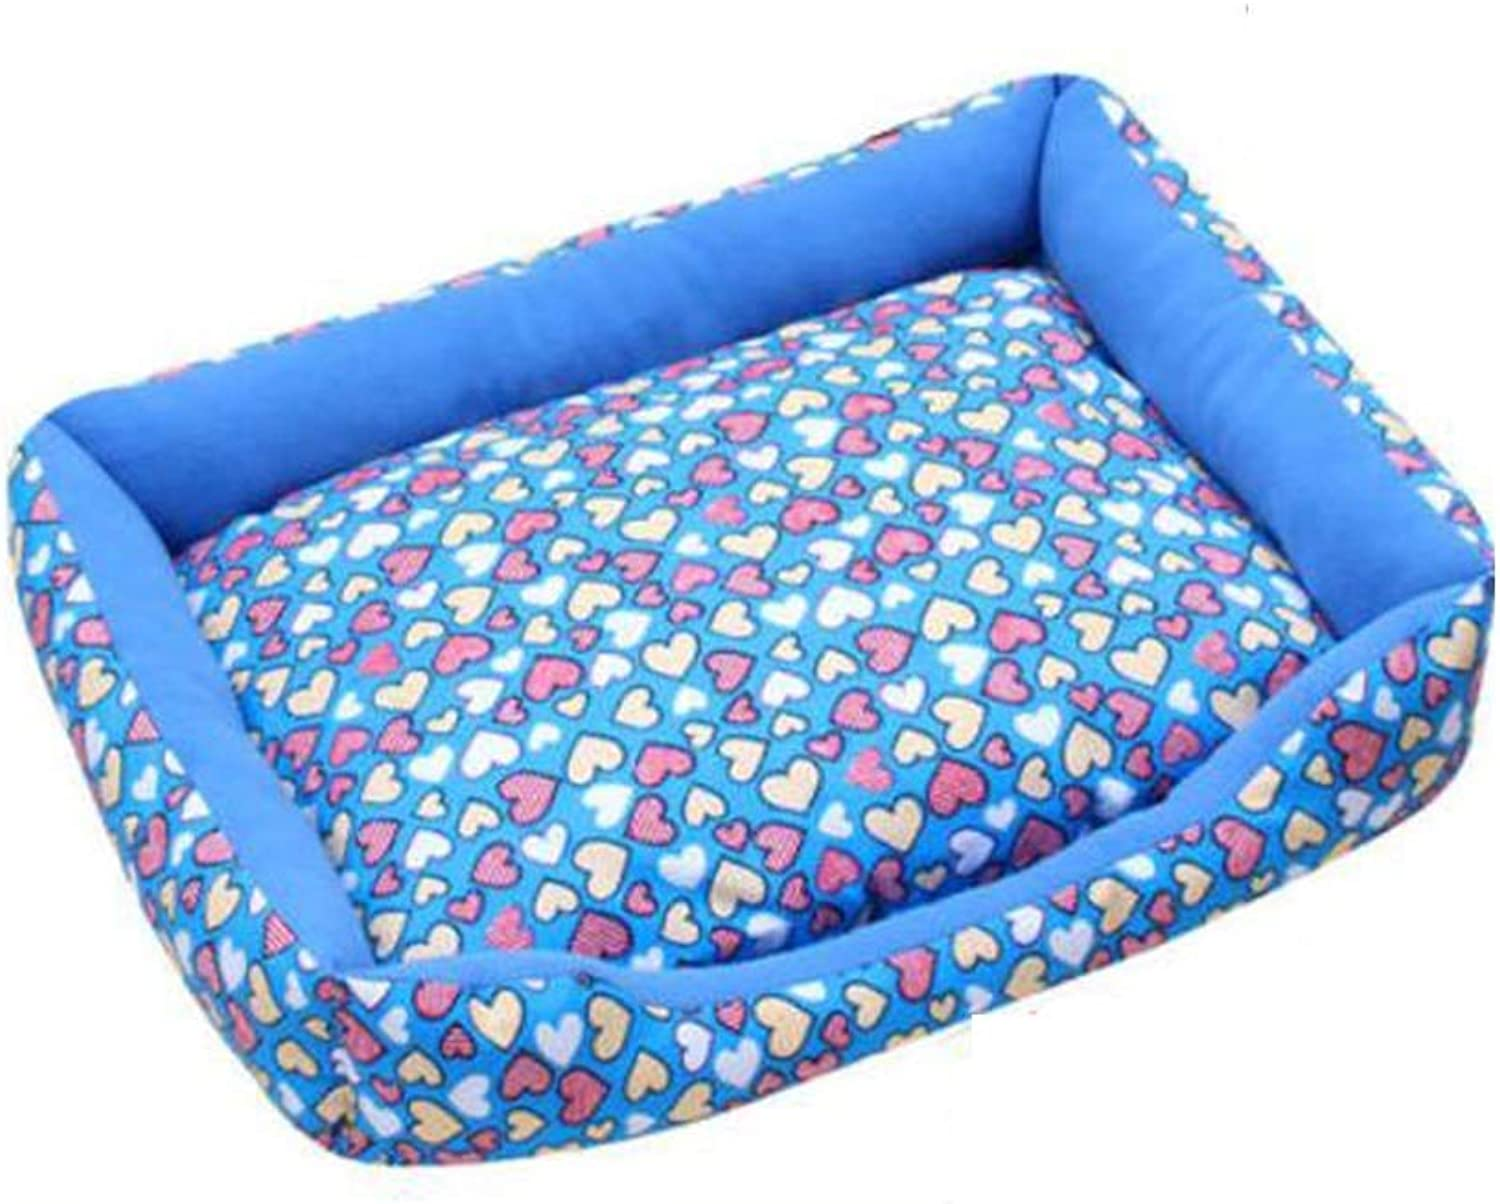 FH Kennel Removable and Washable Four Seasons Universal Cat Litter Small Dog Supplies Dog Teddy Mat (color   bluee, Size   S55X40X11cm)